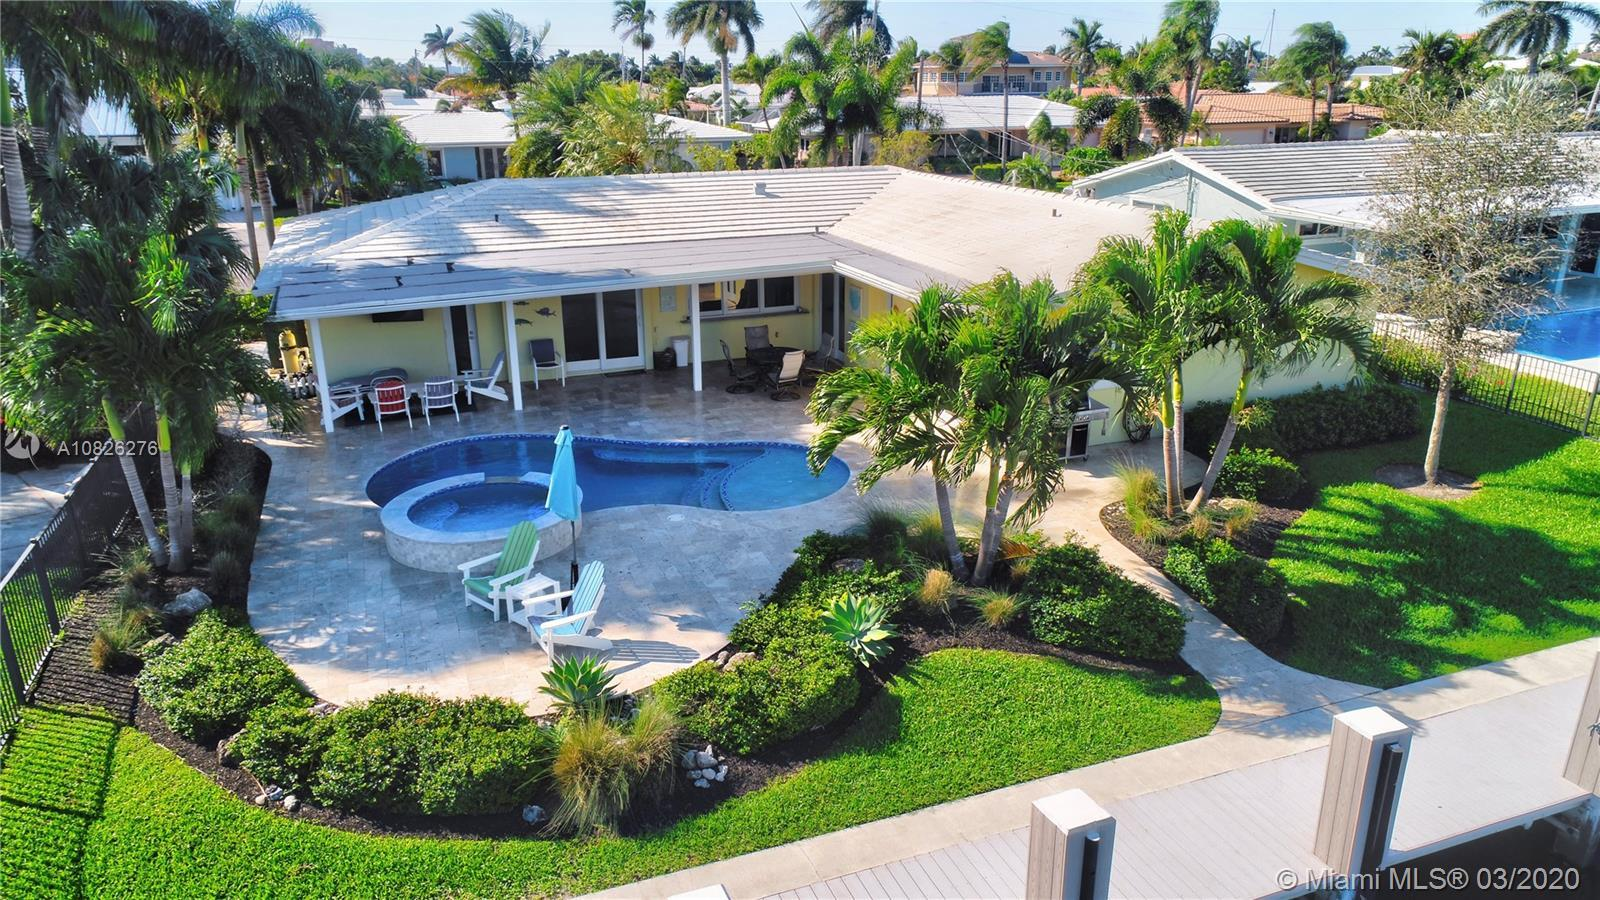 This exceptional waterfront home was completely re-designed & remodeled using the finest materials,